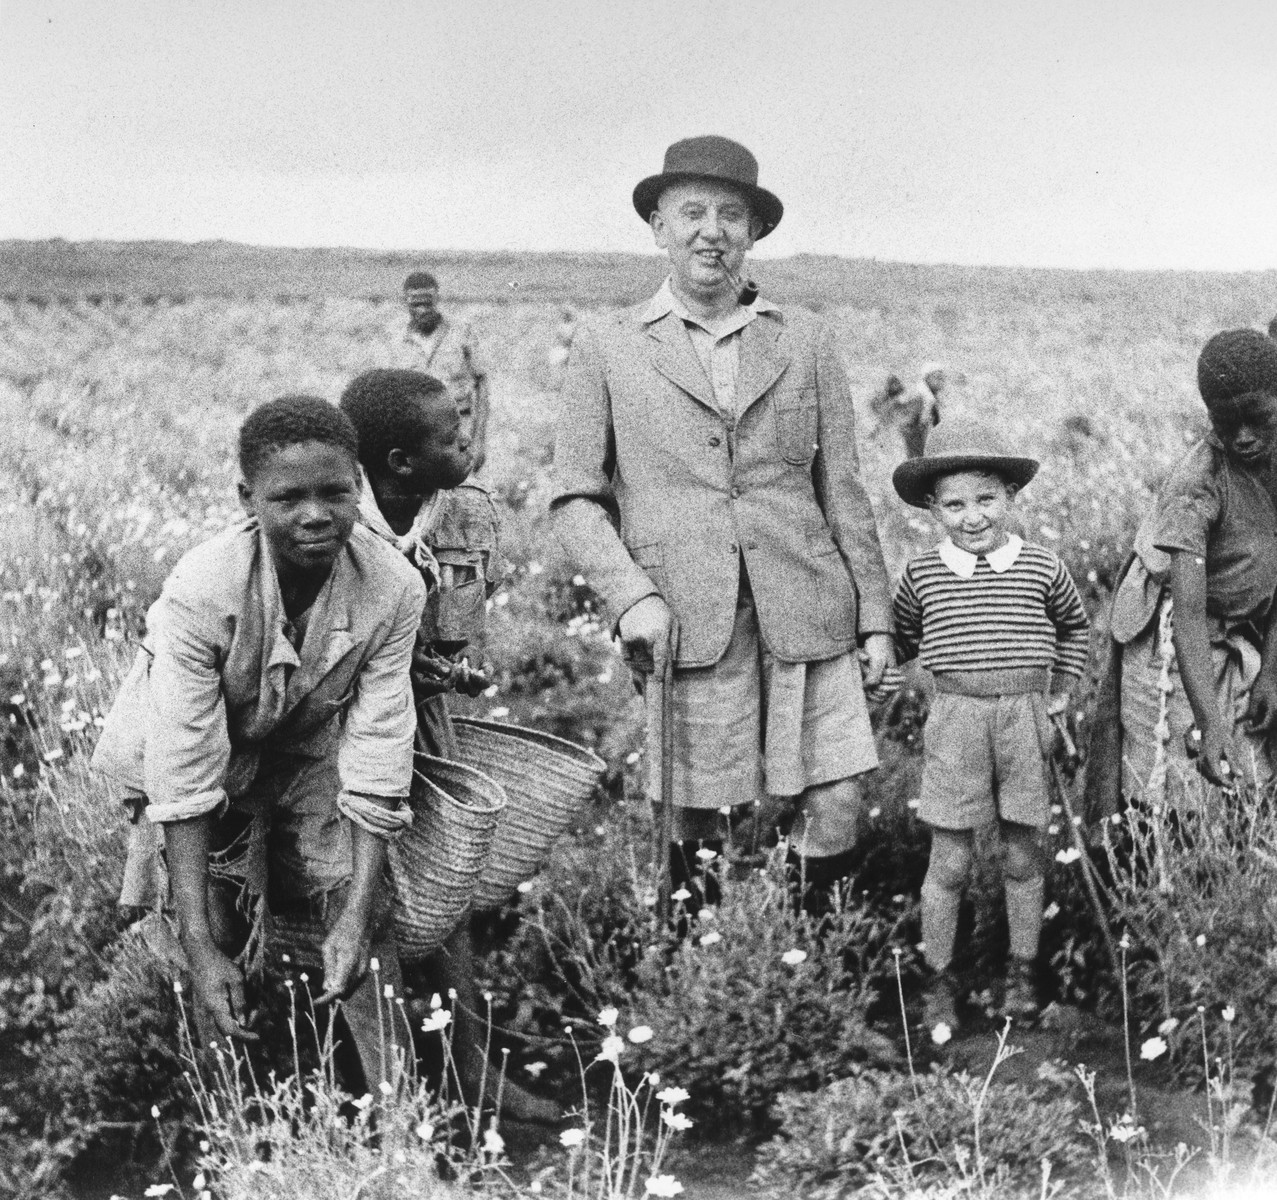 Ernest Berg and his son Philip, Jewish refugees from Germany, pose in a pyrethrum field in Limuru, Kenya, with their African farmhands.  Pyrethrum was used as an insecticide.